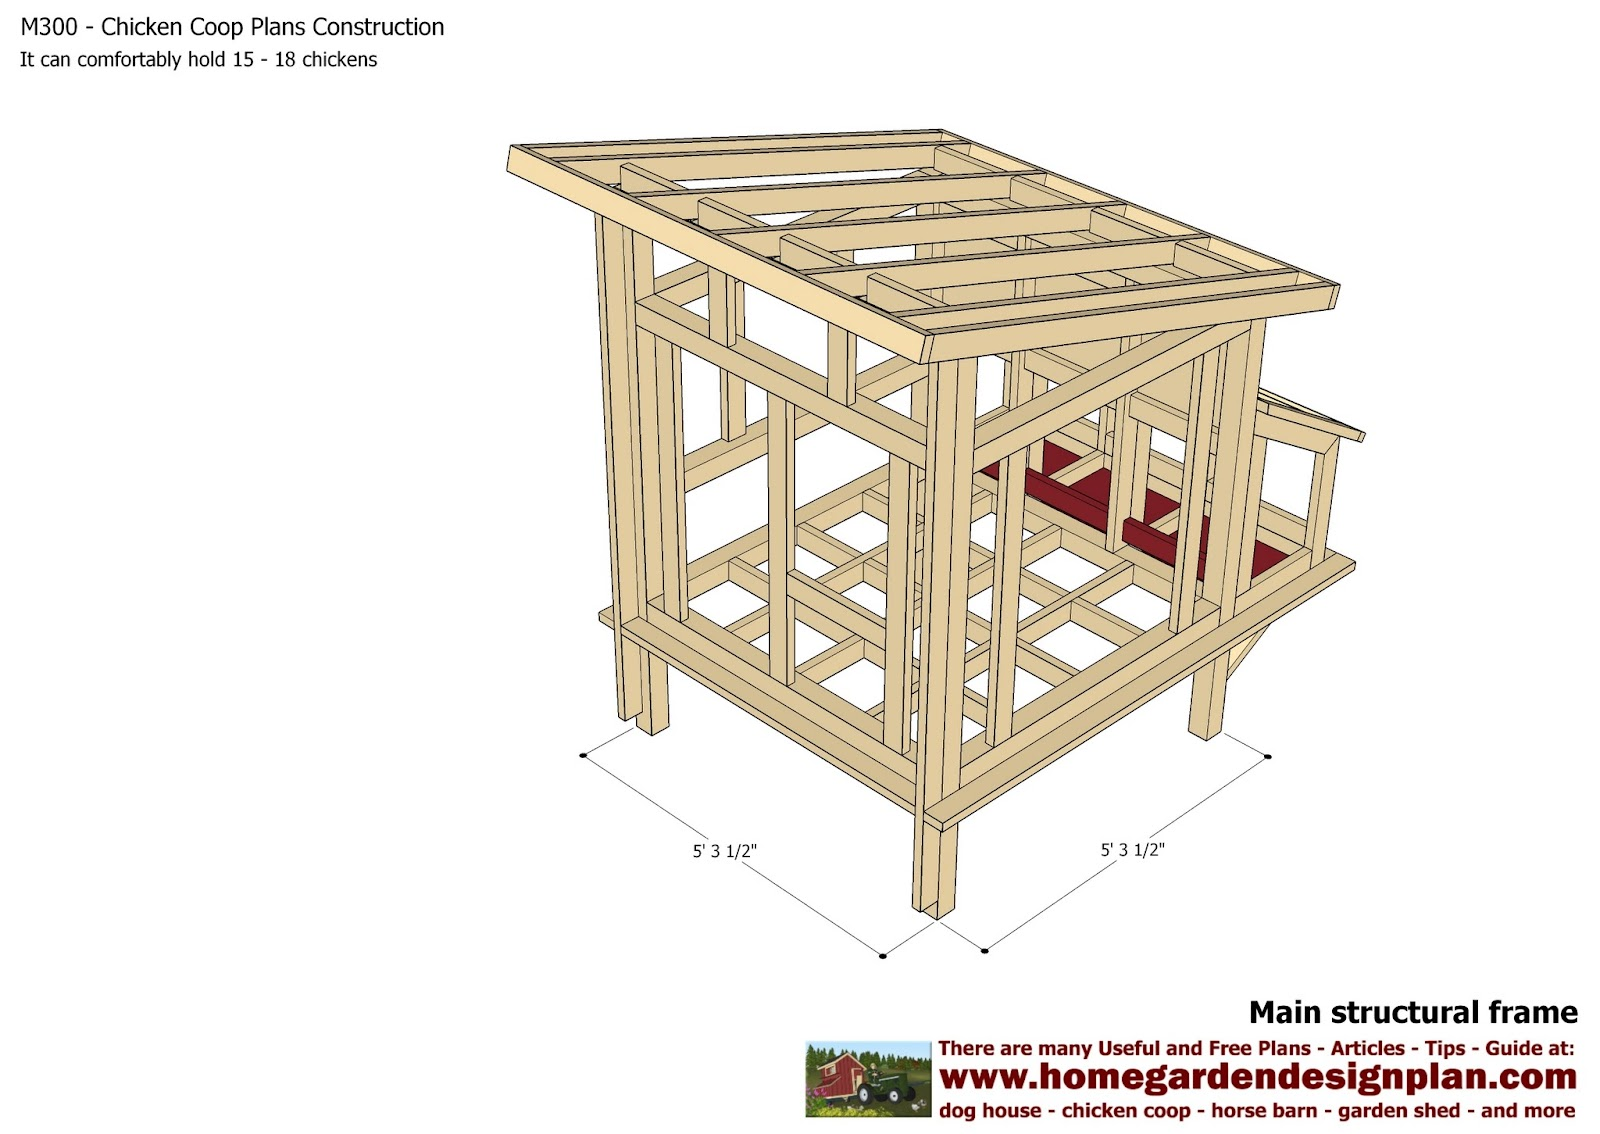 Home garden plans m300 chicken coop plans chicken for Free coop plans